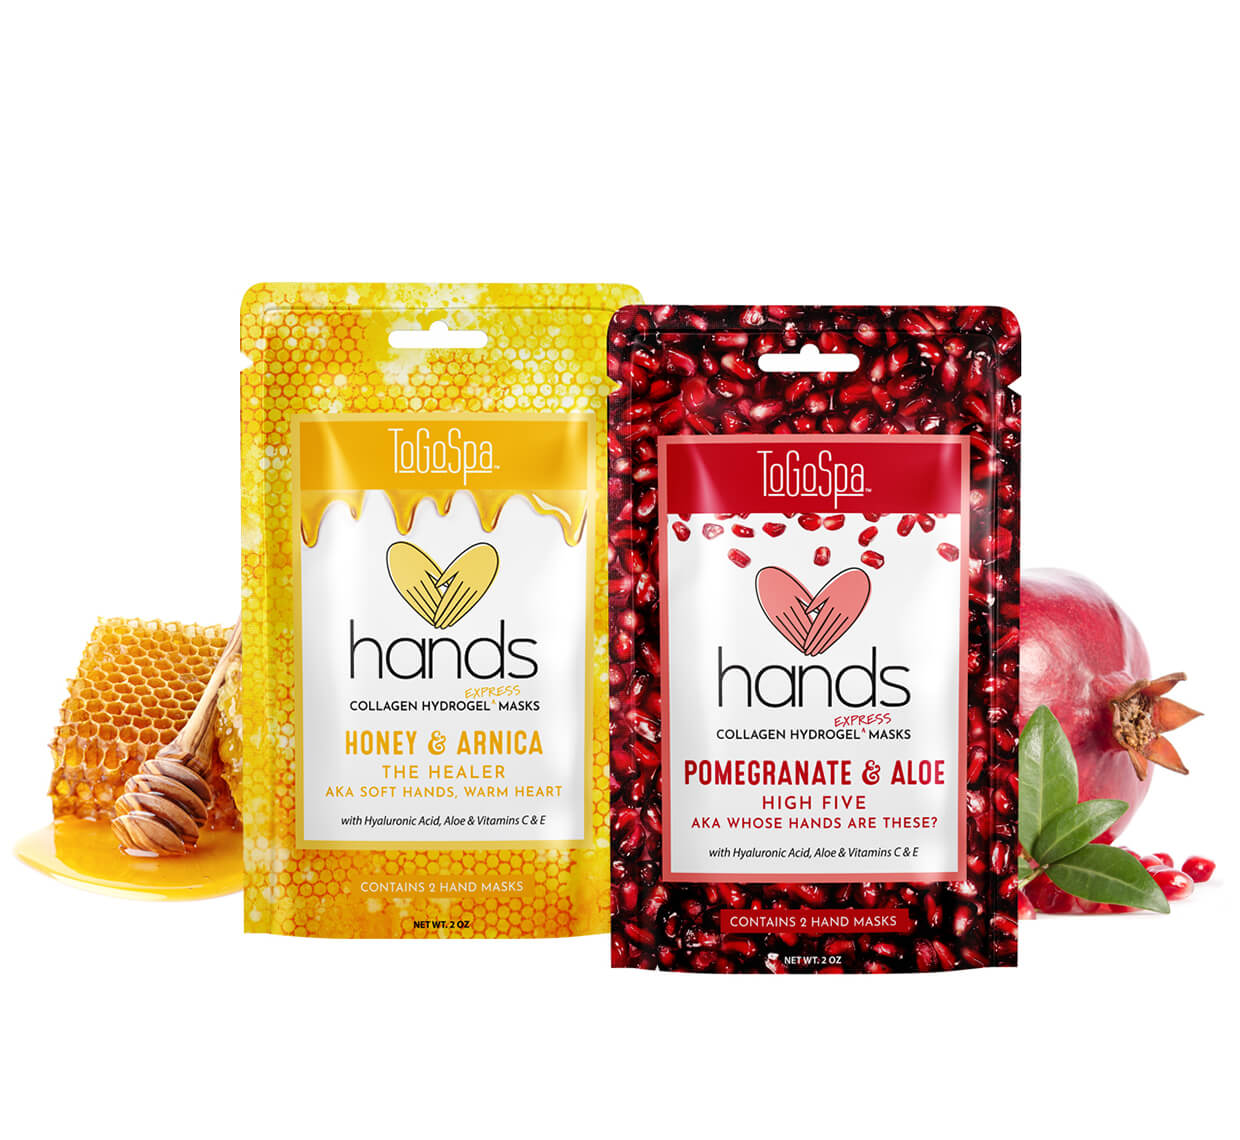 HANDS Mixed Box